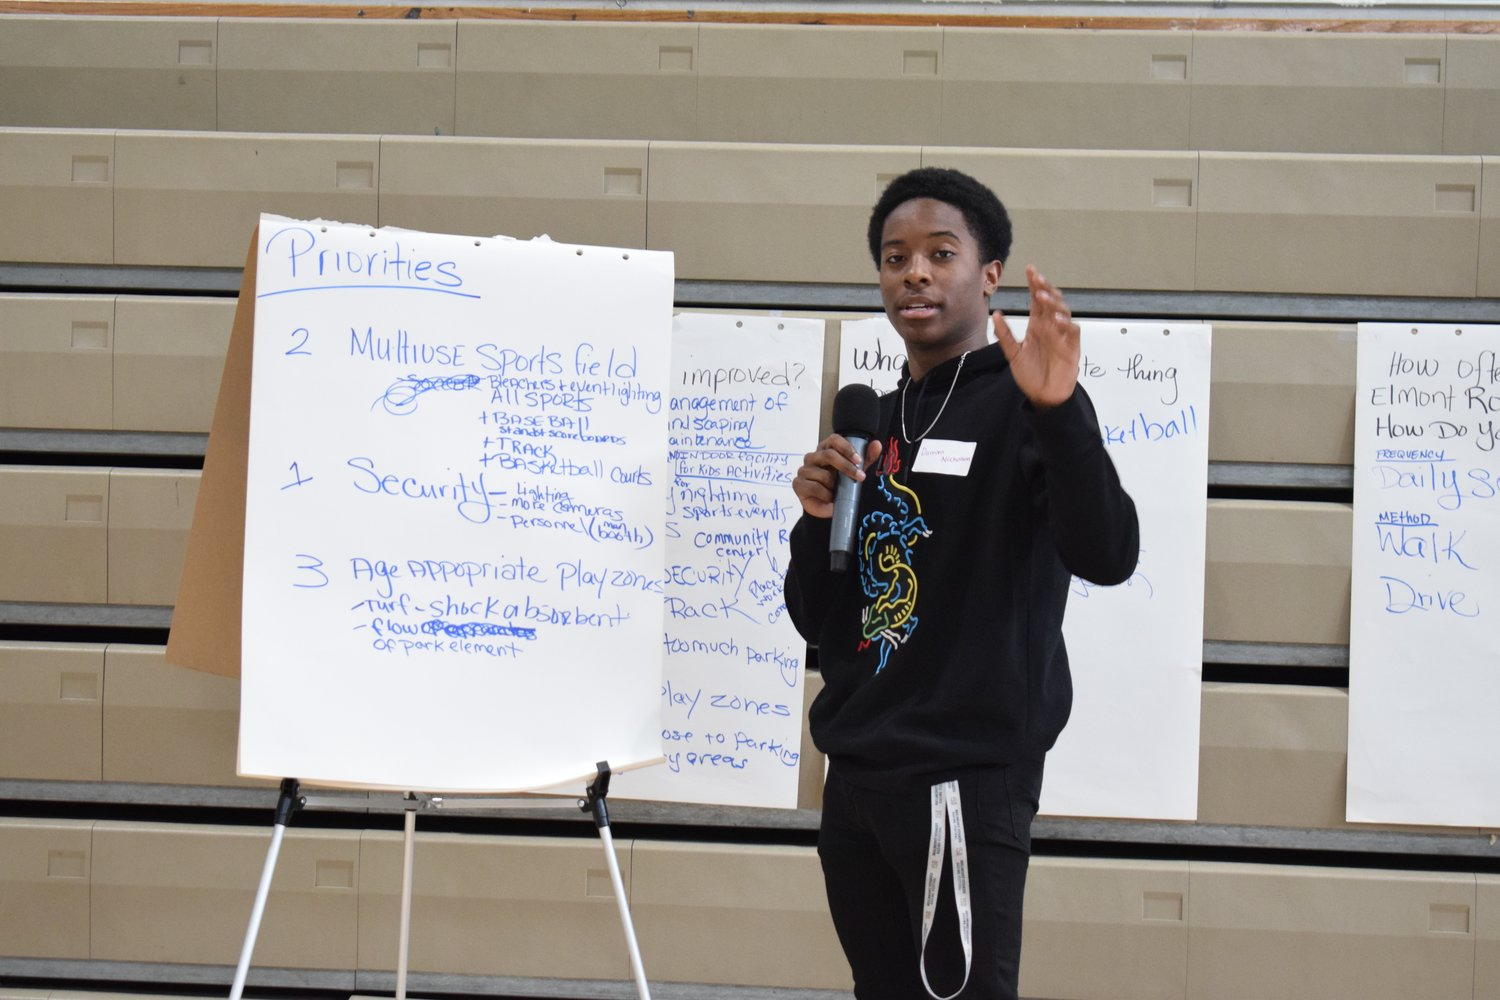 Elmont Memorial High School junior Darrien Nicholson presented his group's priorities for what they wanted to see in a new Elmont Road Park at a recent workshop.